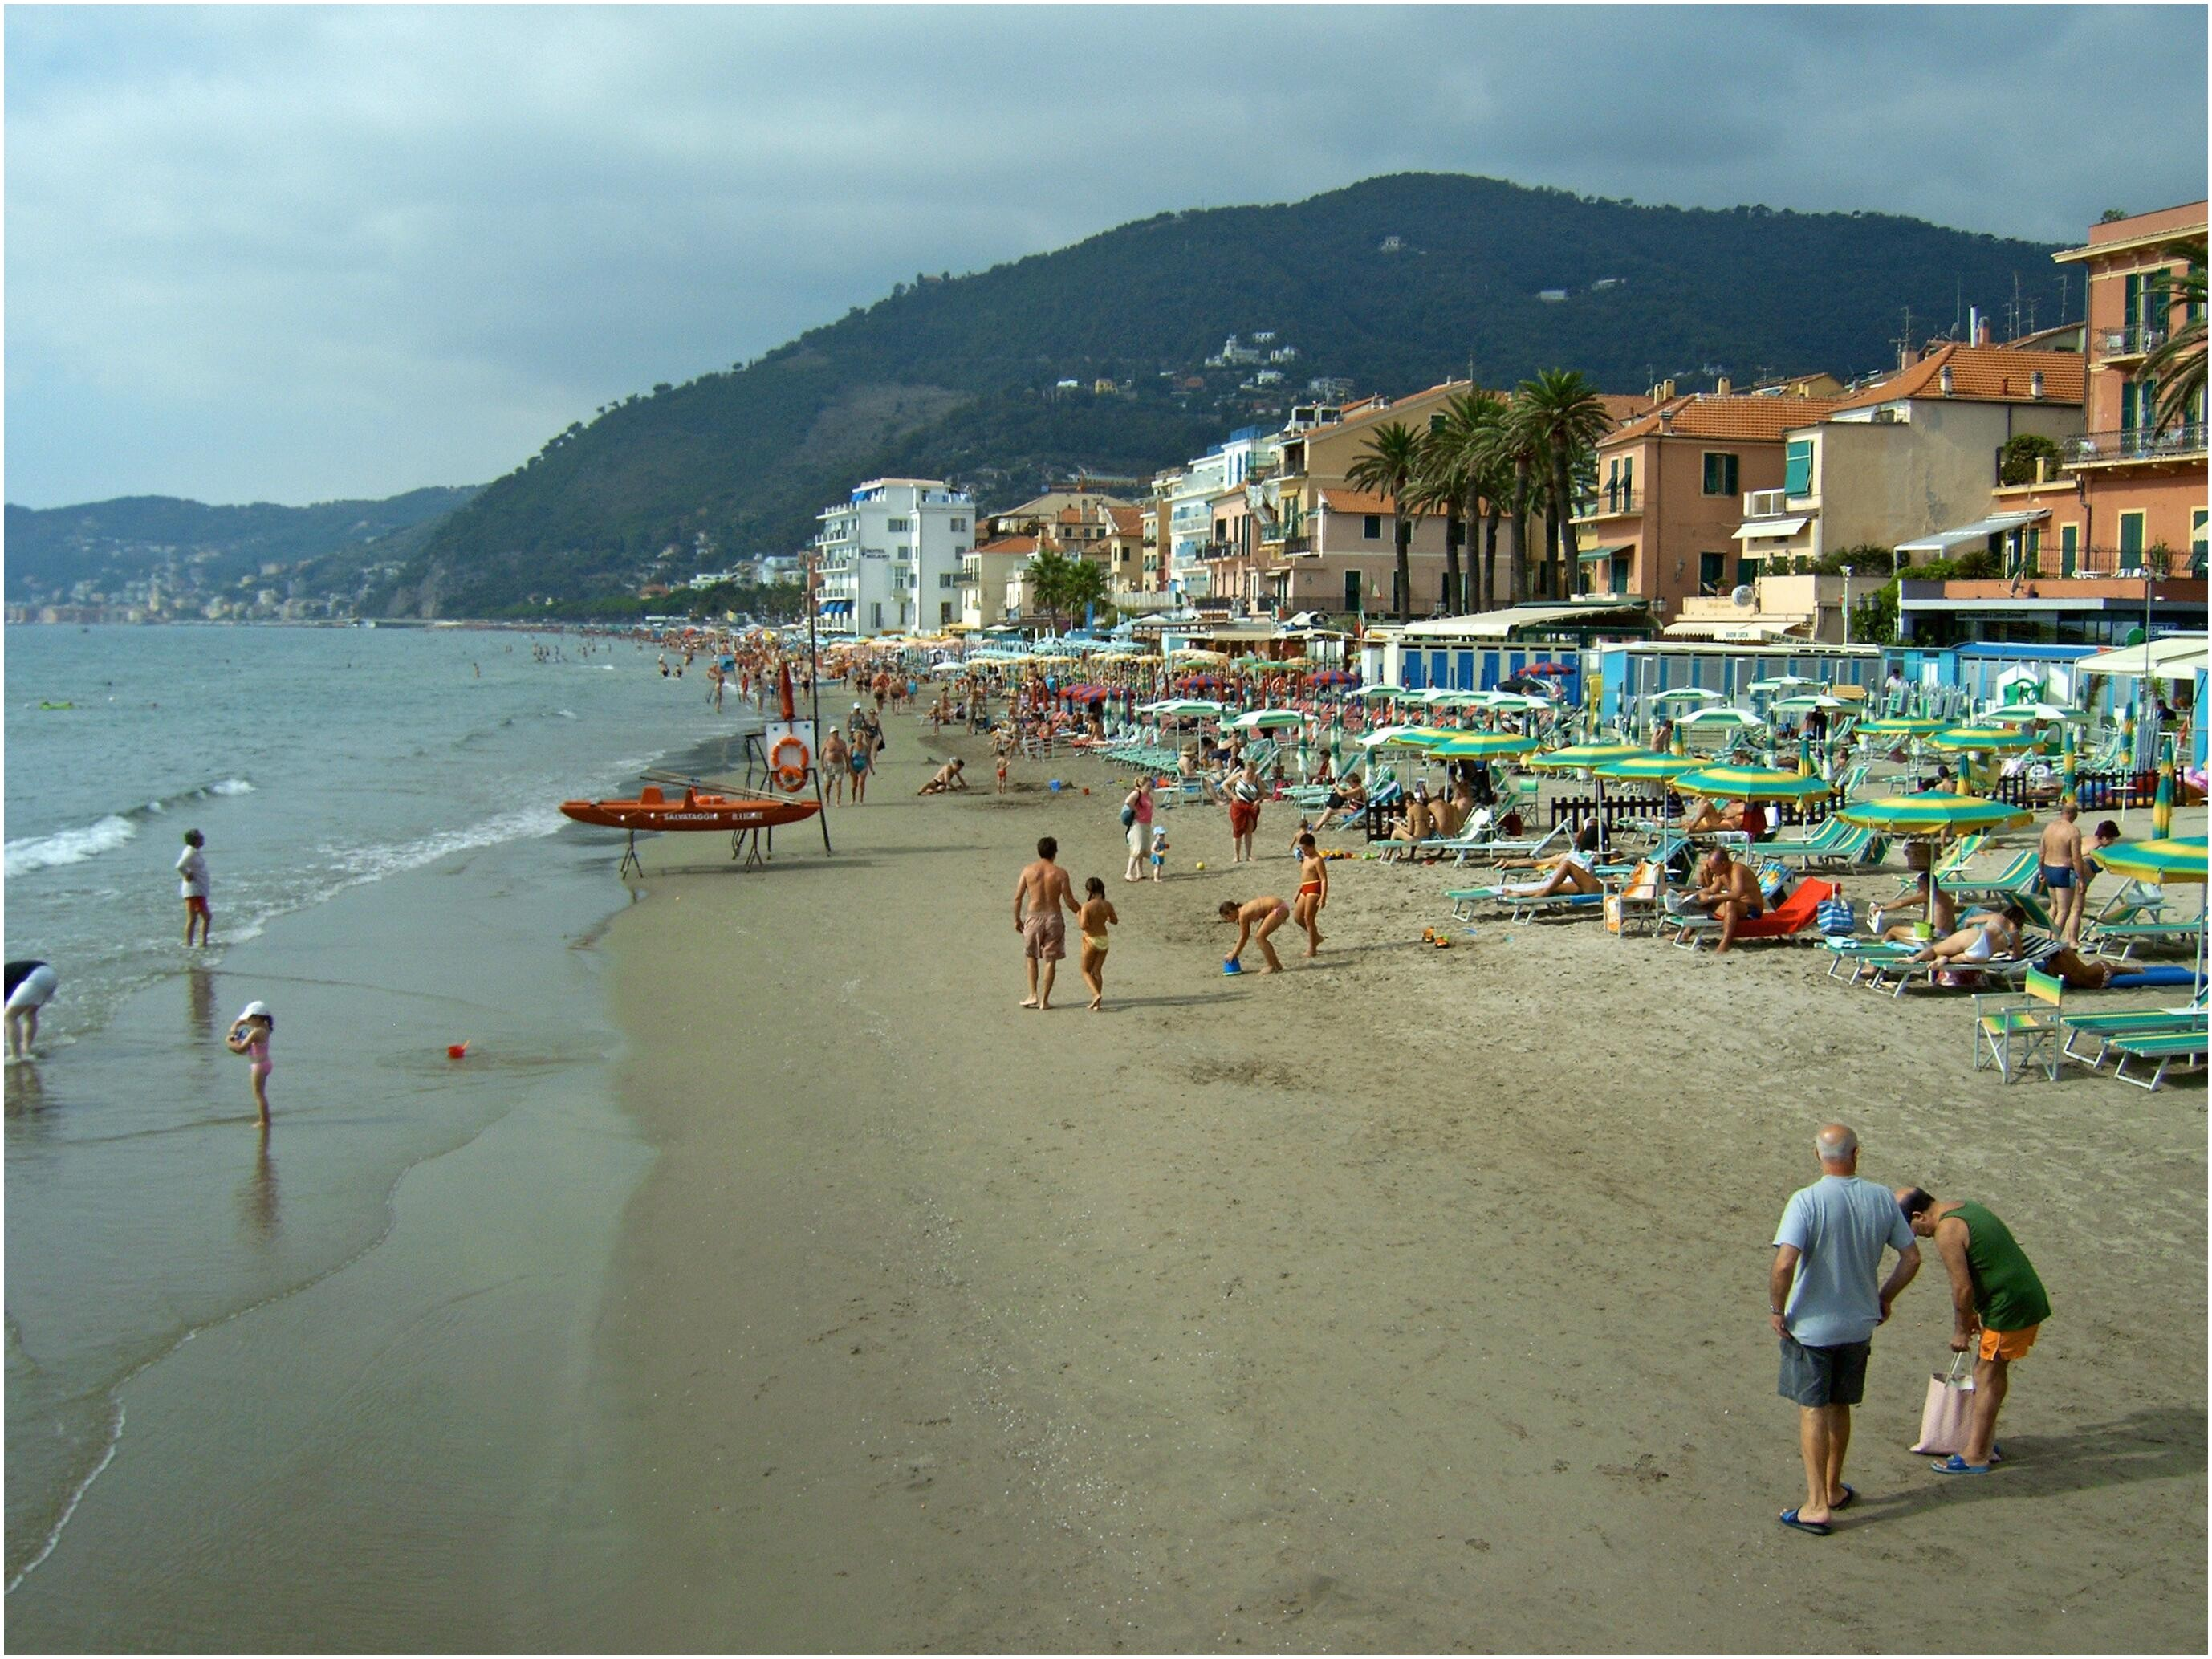 at the beach in the resort of Alassio Italy wallpapers and images